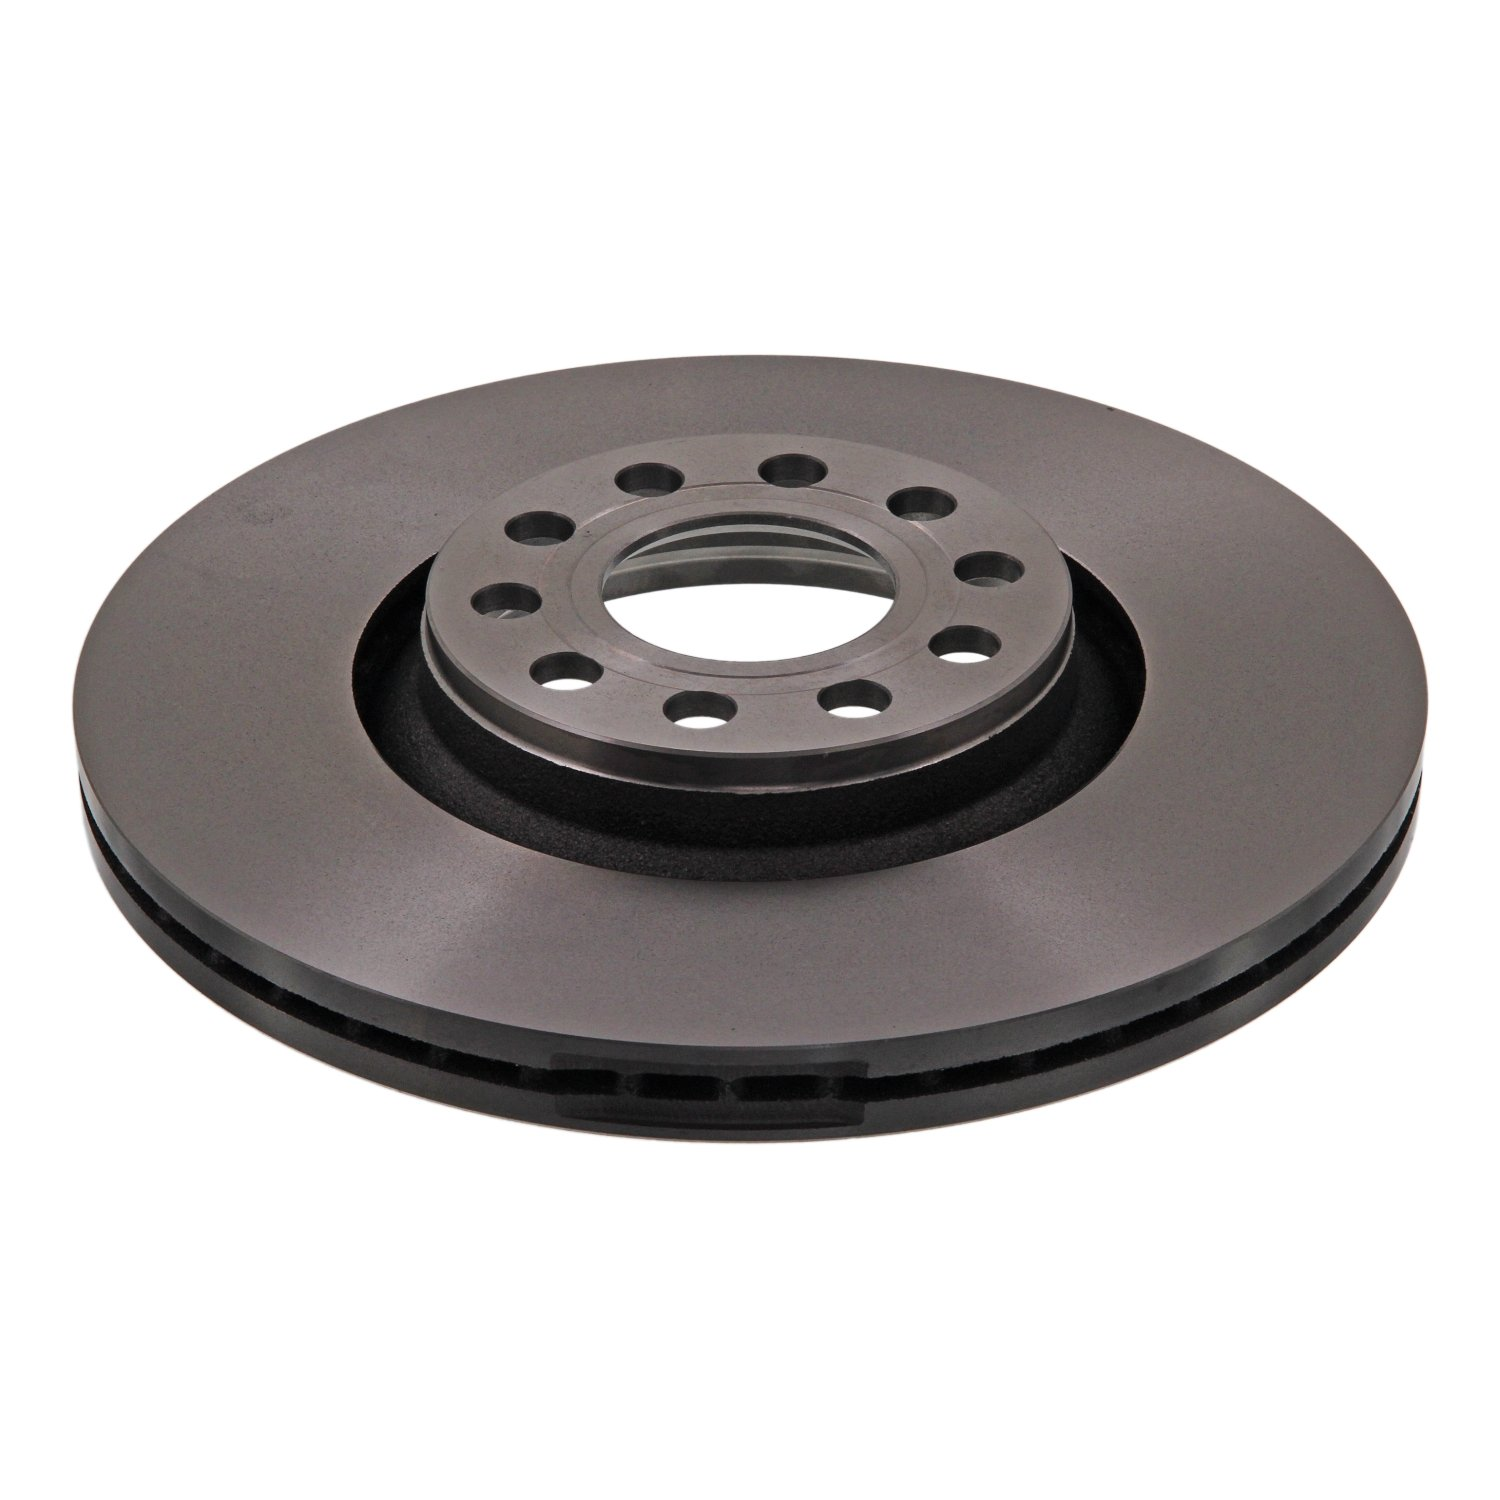 Mintex MDC1729 Rear Brake Discs x2 296mm Diameter Solid 10mm Thickness